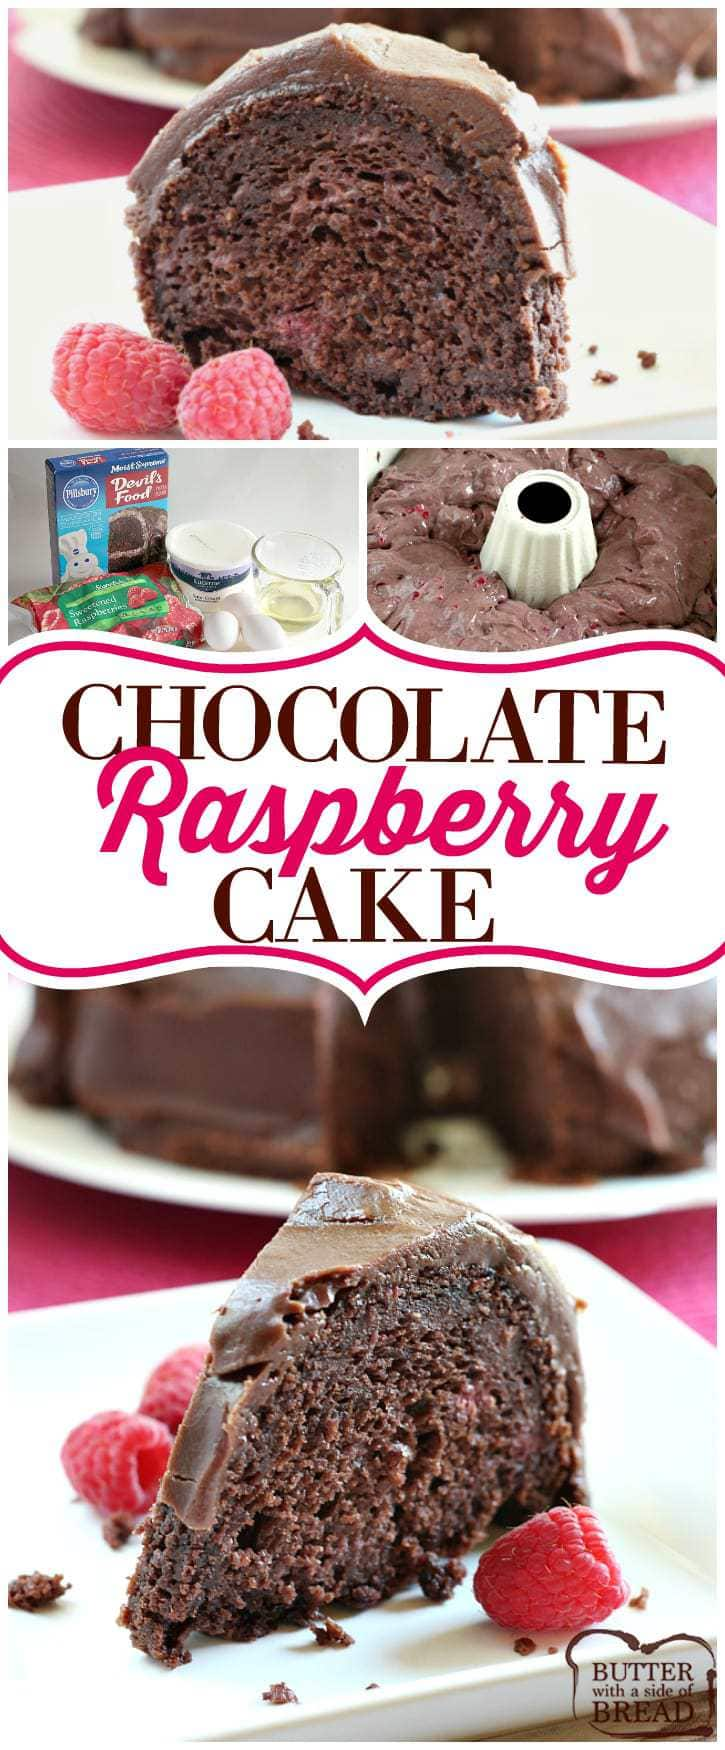 Chocolate Raspberry Cake is made with a cake mix and frozen raspberries and just a few more basic ingredients. This chocolate cake is topped with a simple and amazing chocolate ganache to create one of my favorite chocolate cake mix recipes!